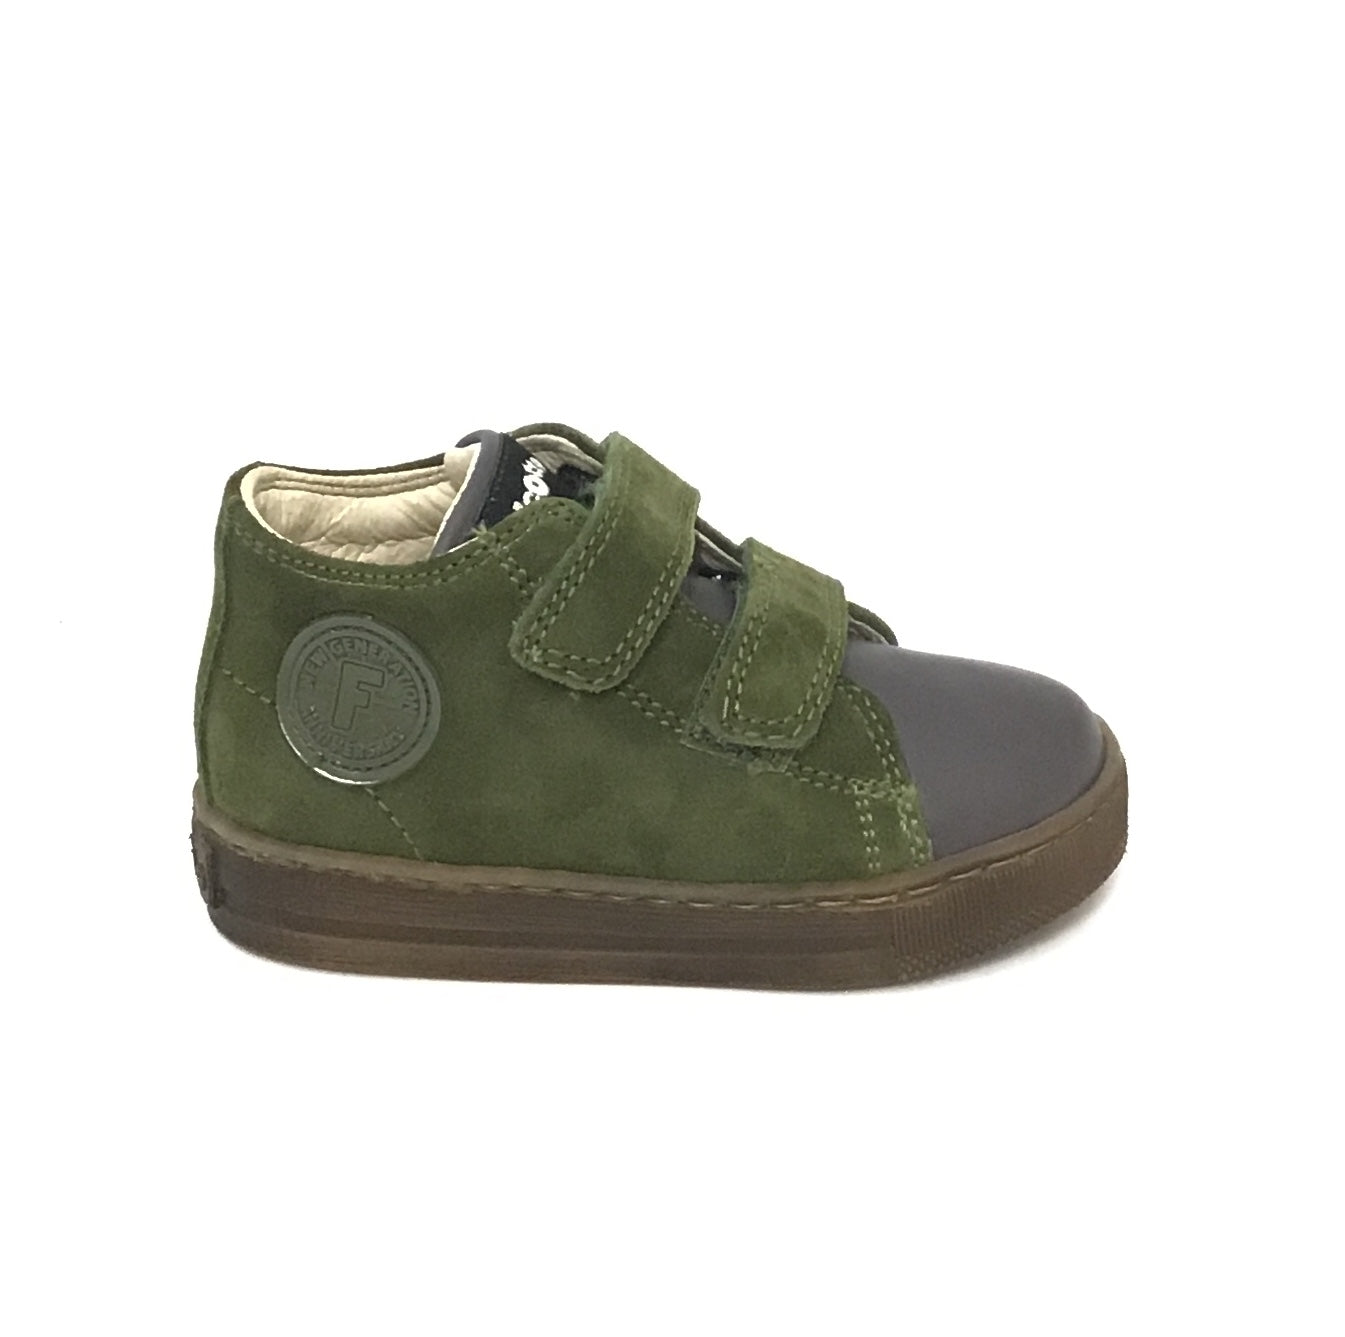 Falcotto Military Green Velour Shoe with Double Velcro